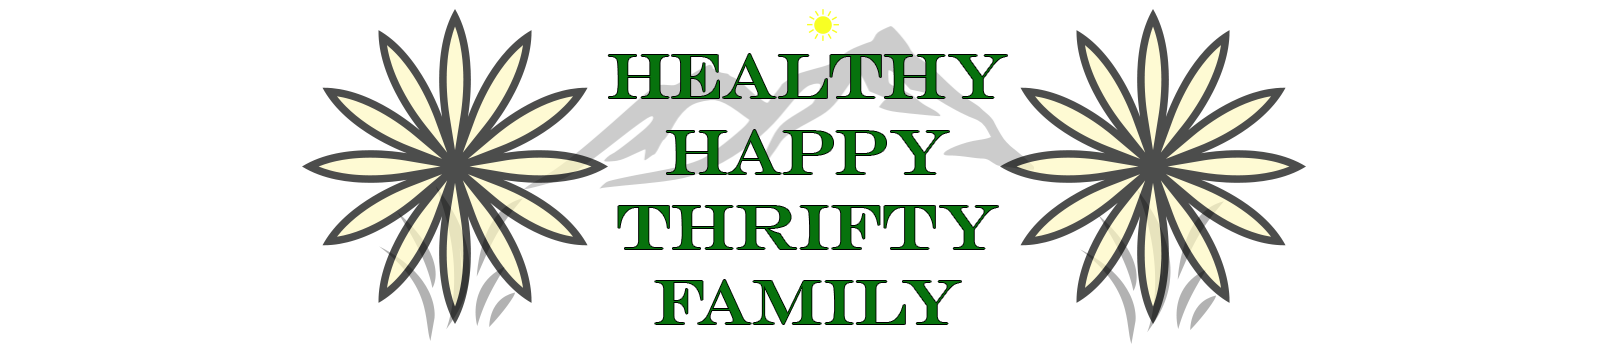 Healthy Happy Thrifty Family - Product Review